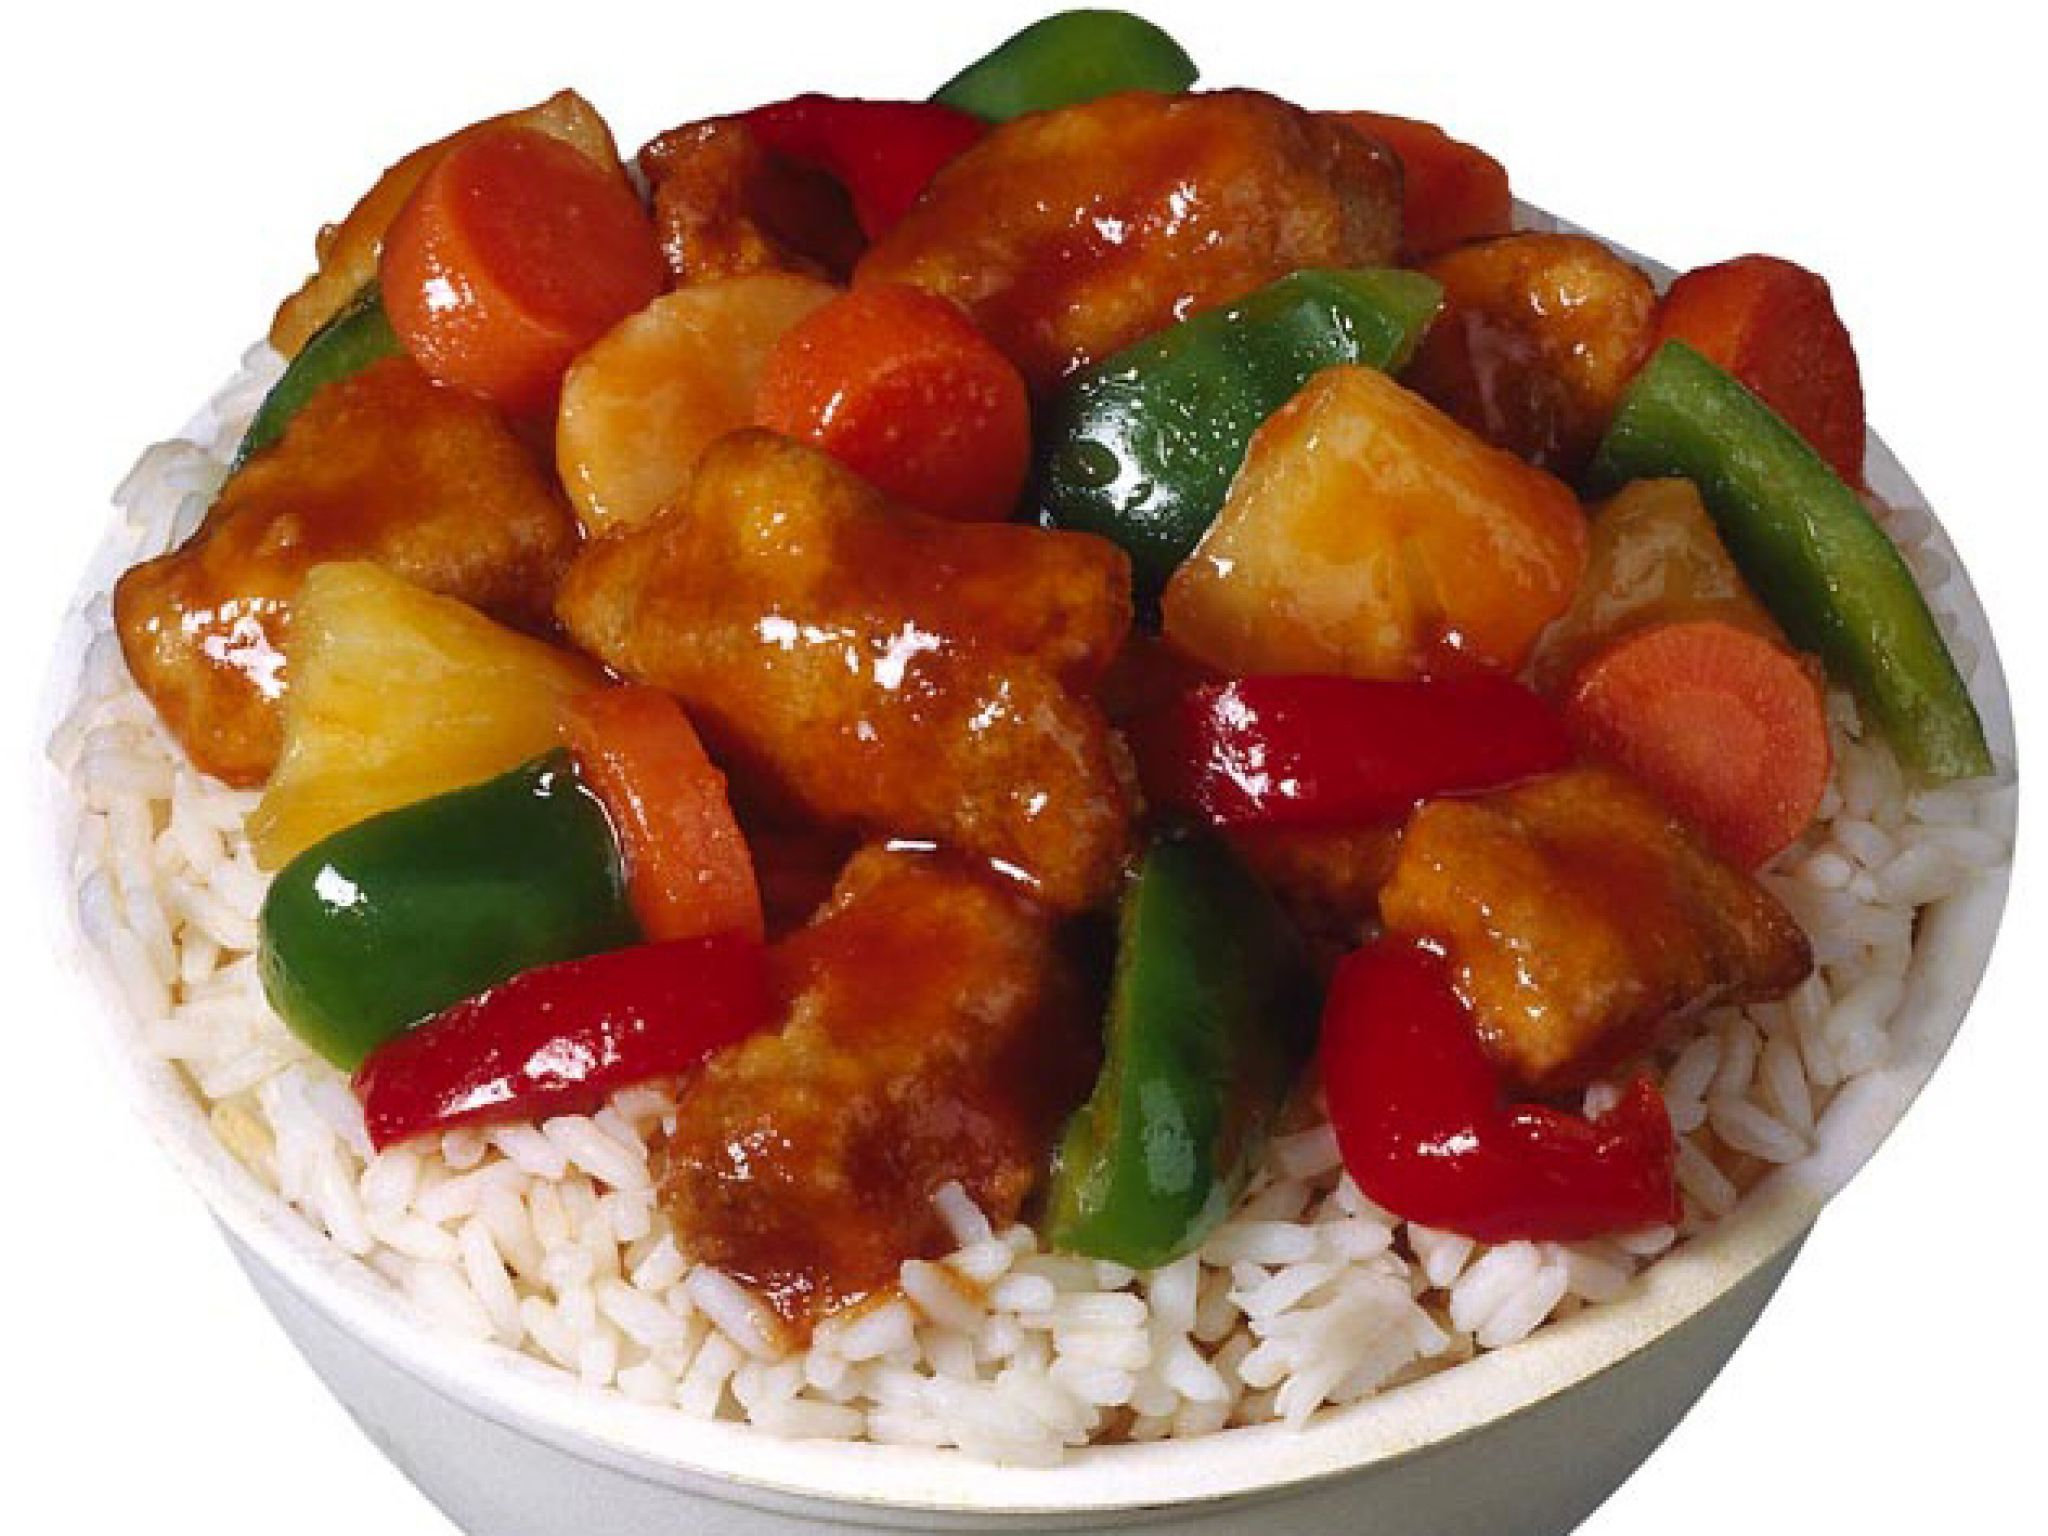 Sweet and sour chicken recipe kitchens foods and recipes get this all star easy to follow sweet and sour chicken recipe forumfinder Gallery